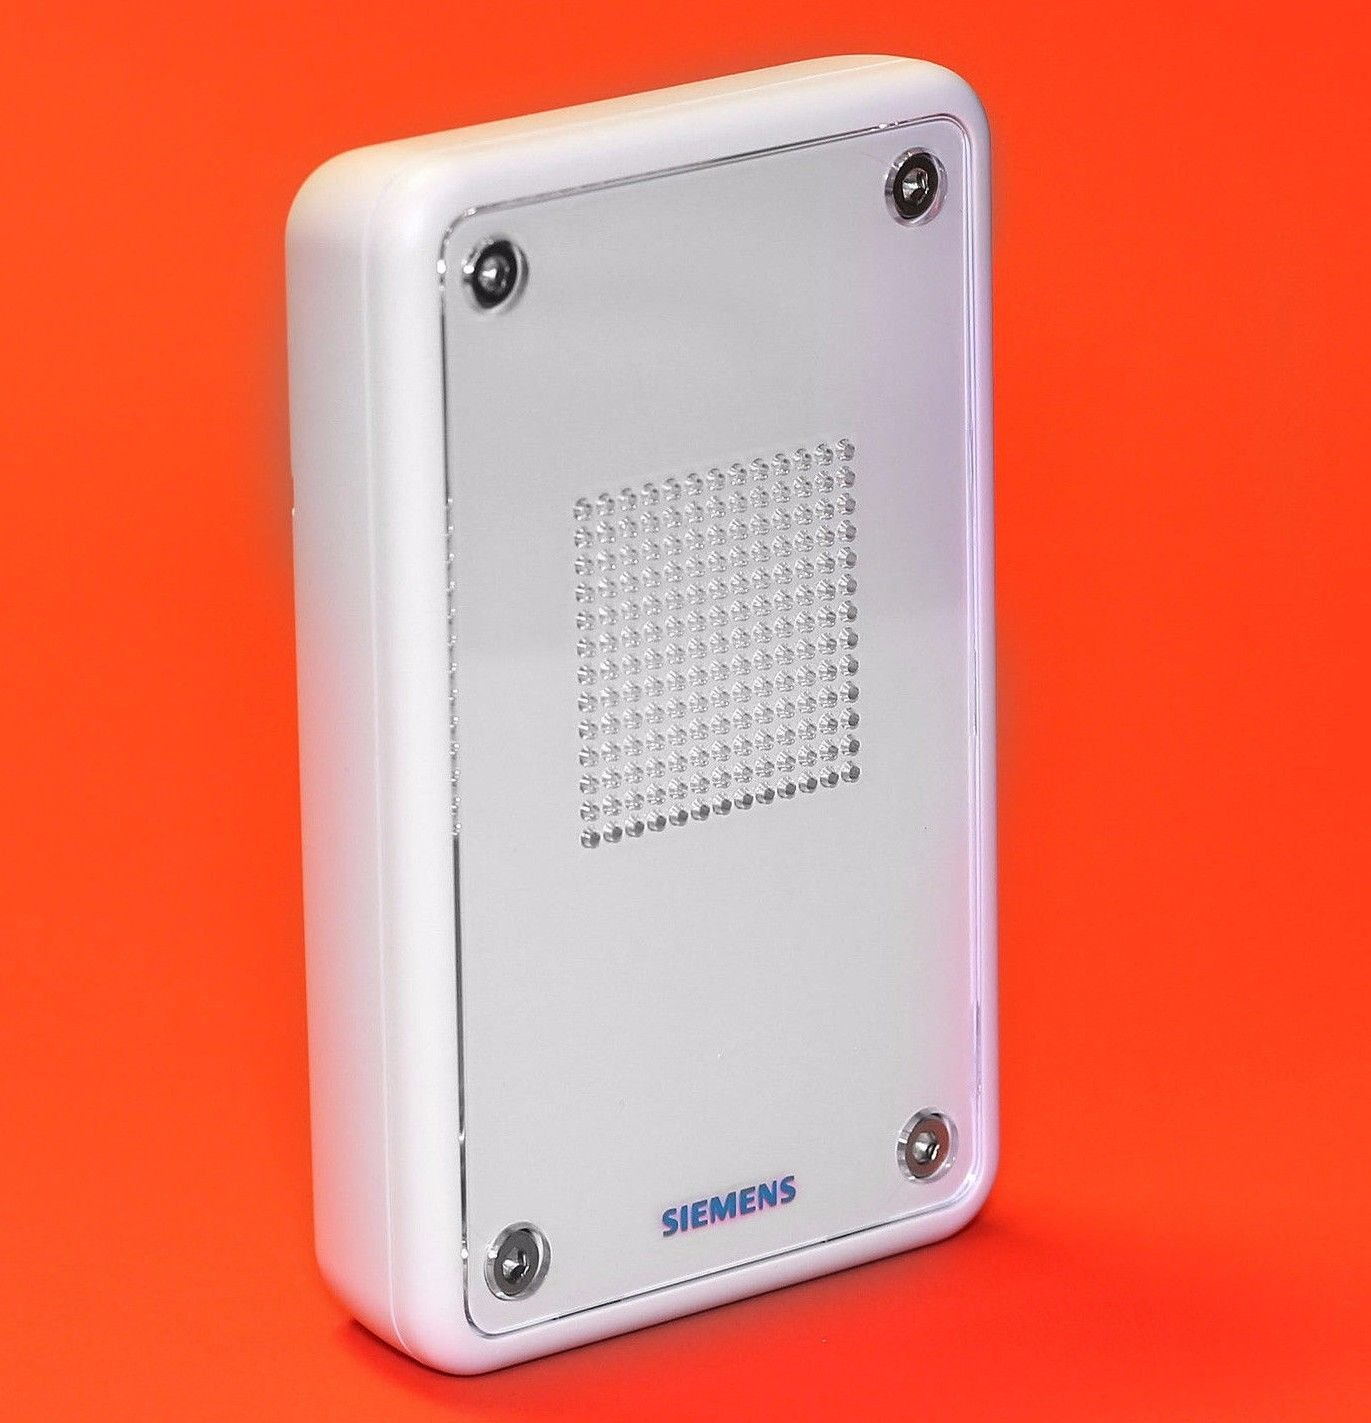 Siemens Wired Wall Mounted Recordable MP3 Door Bell Chime DCW20